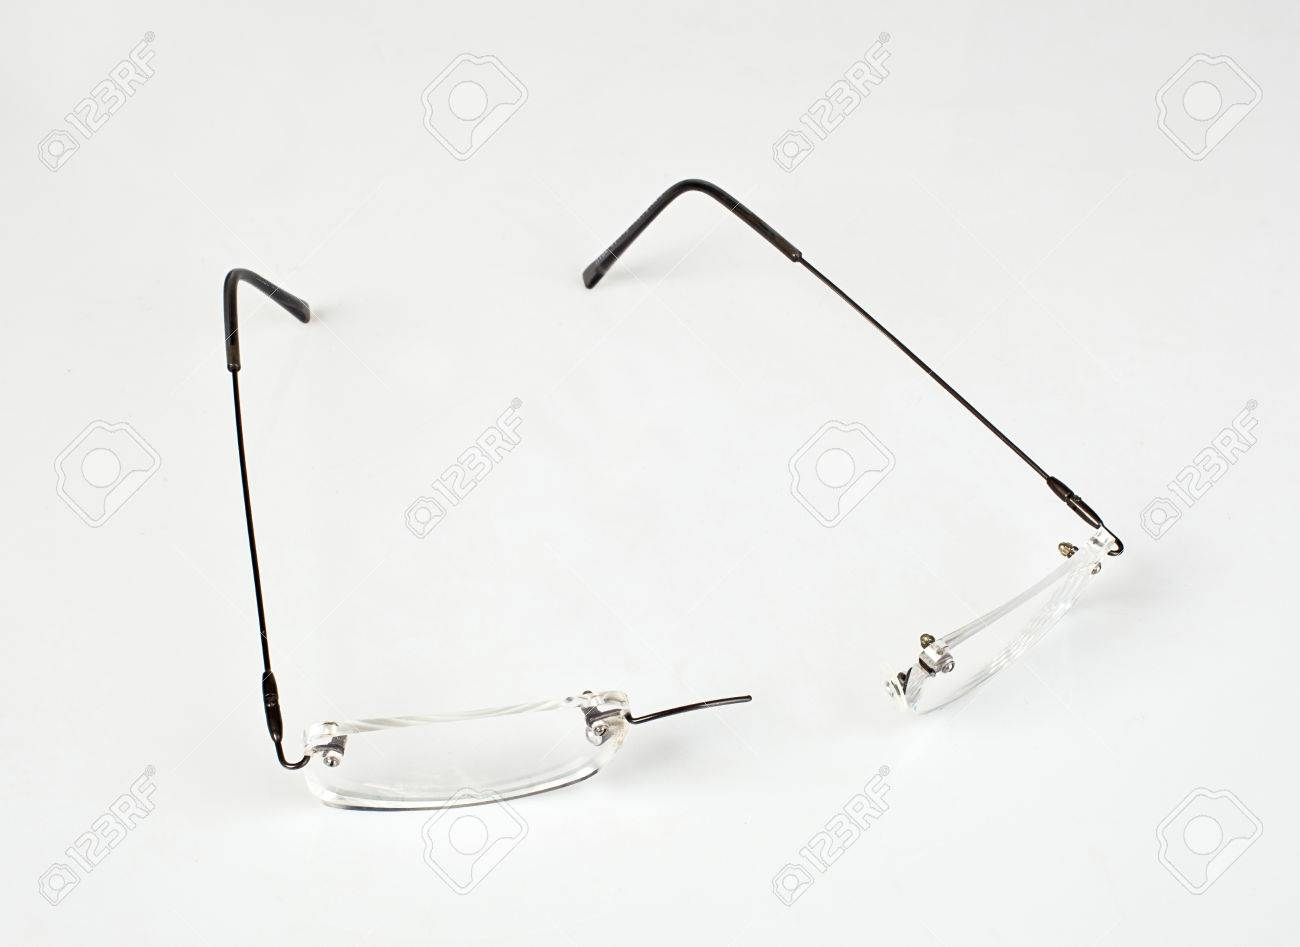 Eyeglasses With Lightweight Frame Broken On White Table. Stock Photo ...